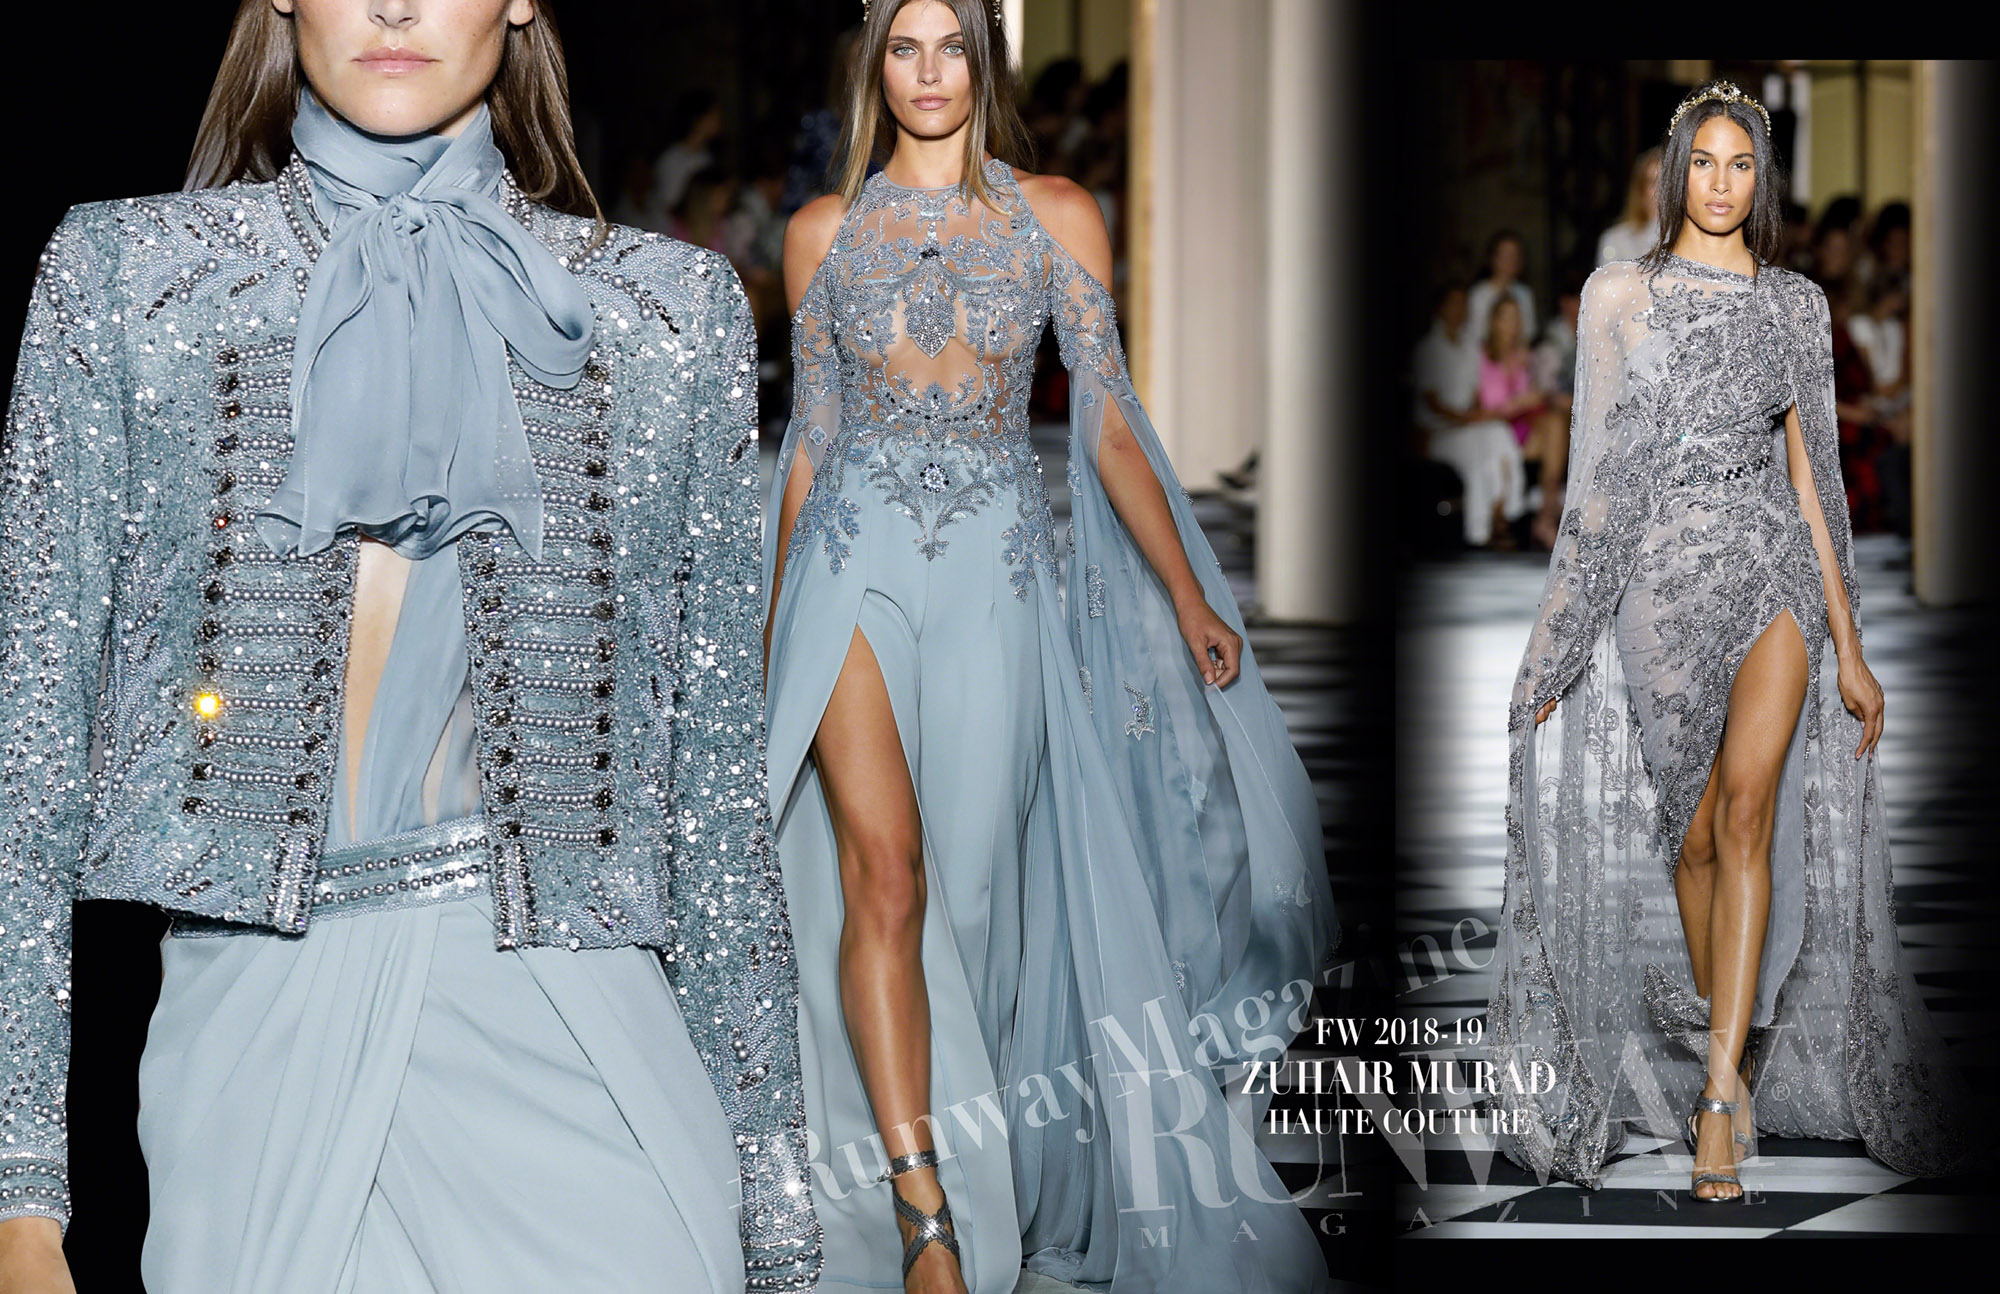 ZUHAIR MURAD Haute Couture Fall Winter 2018-2019 Runway Magazine